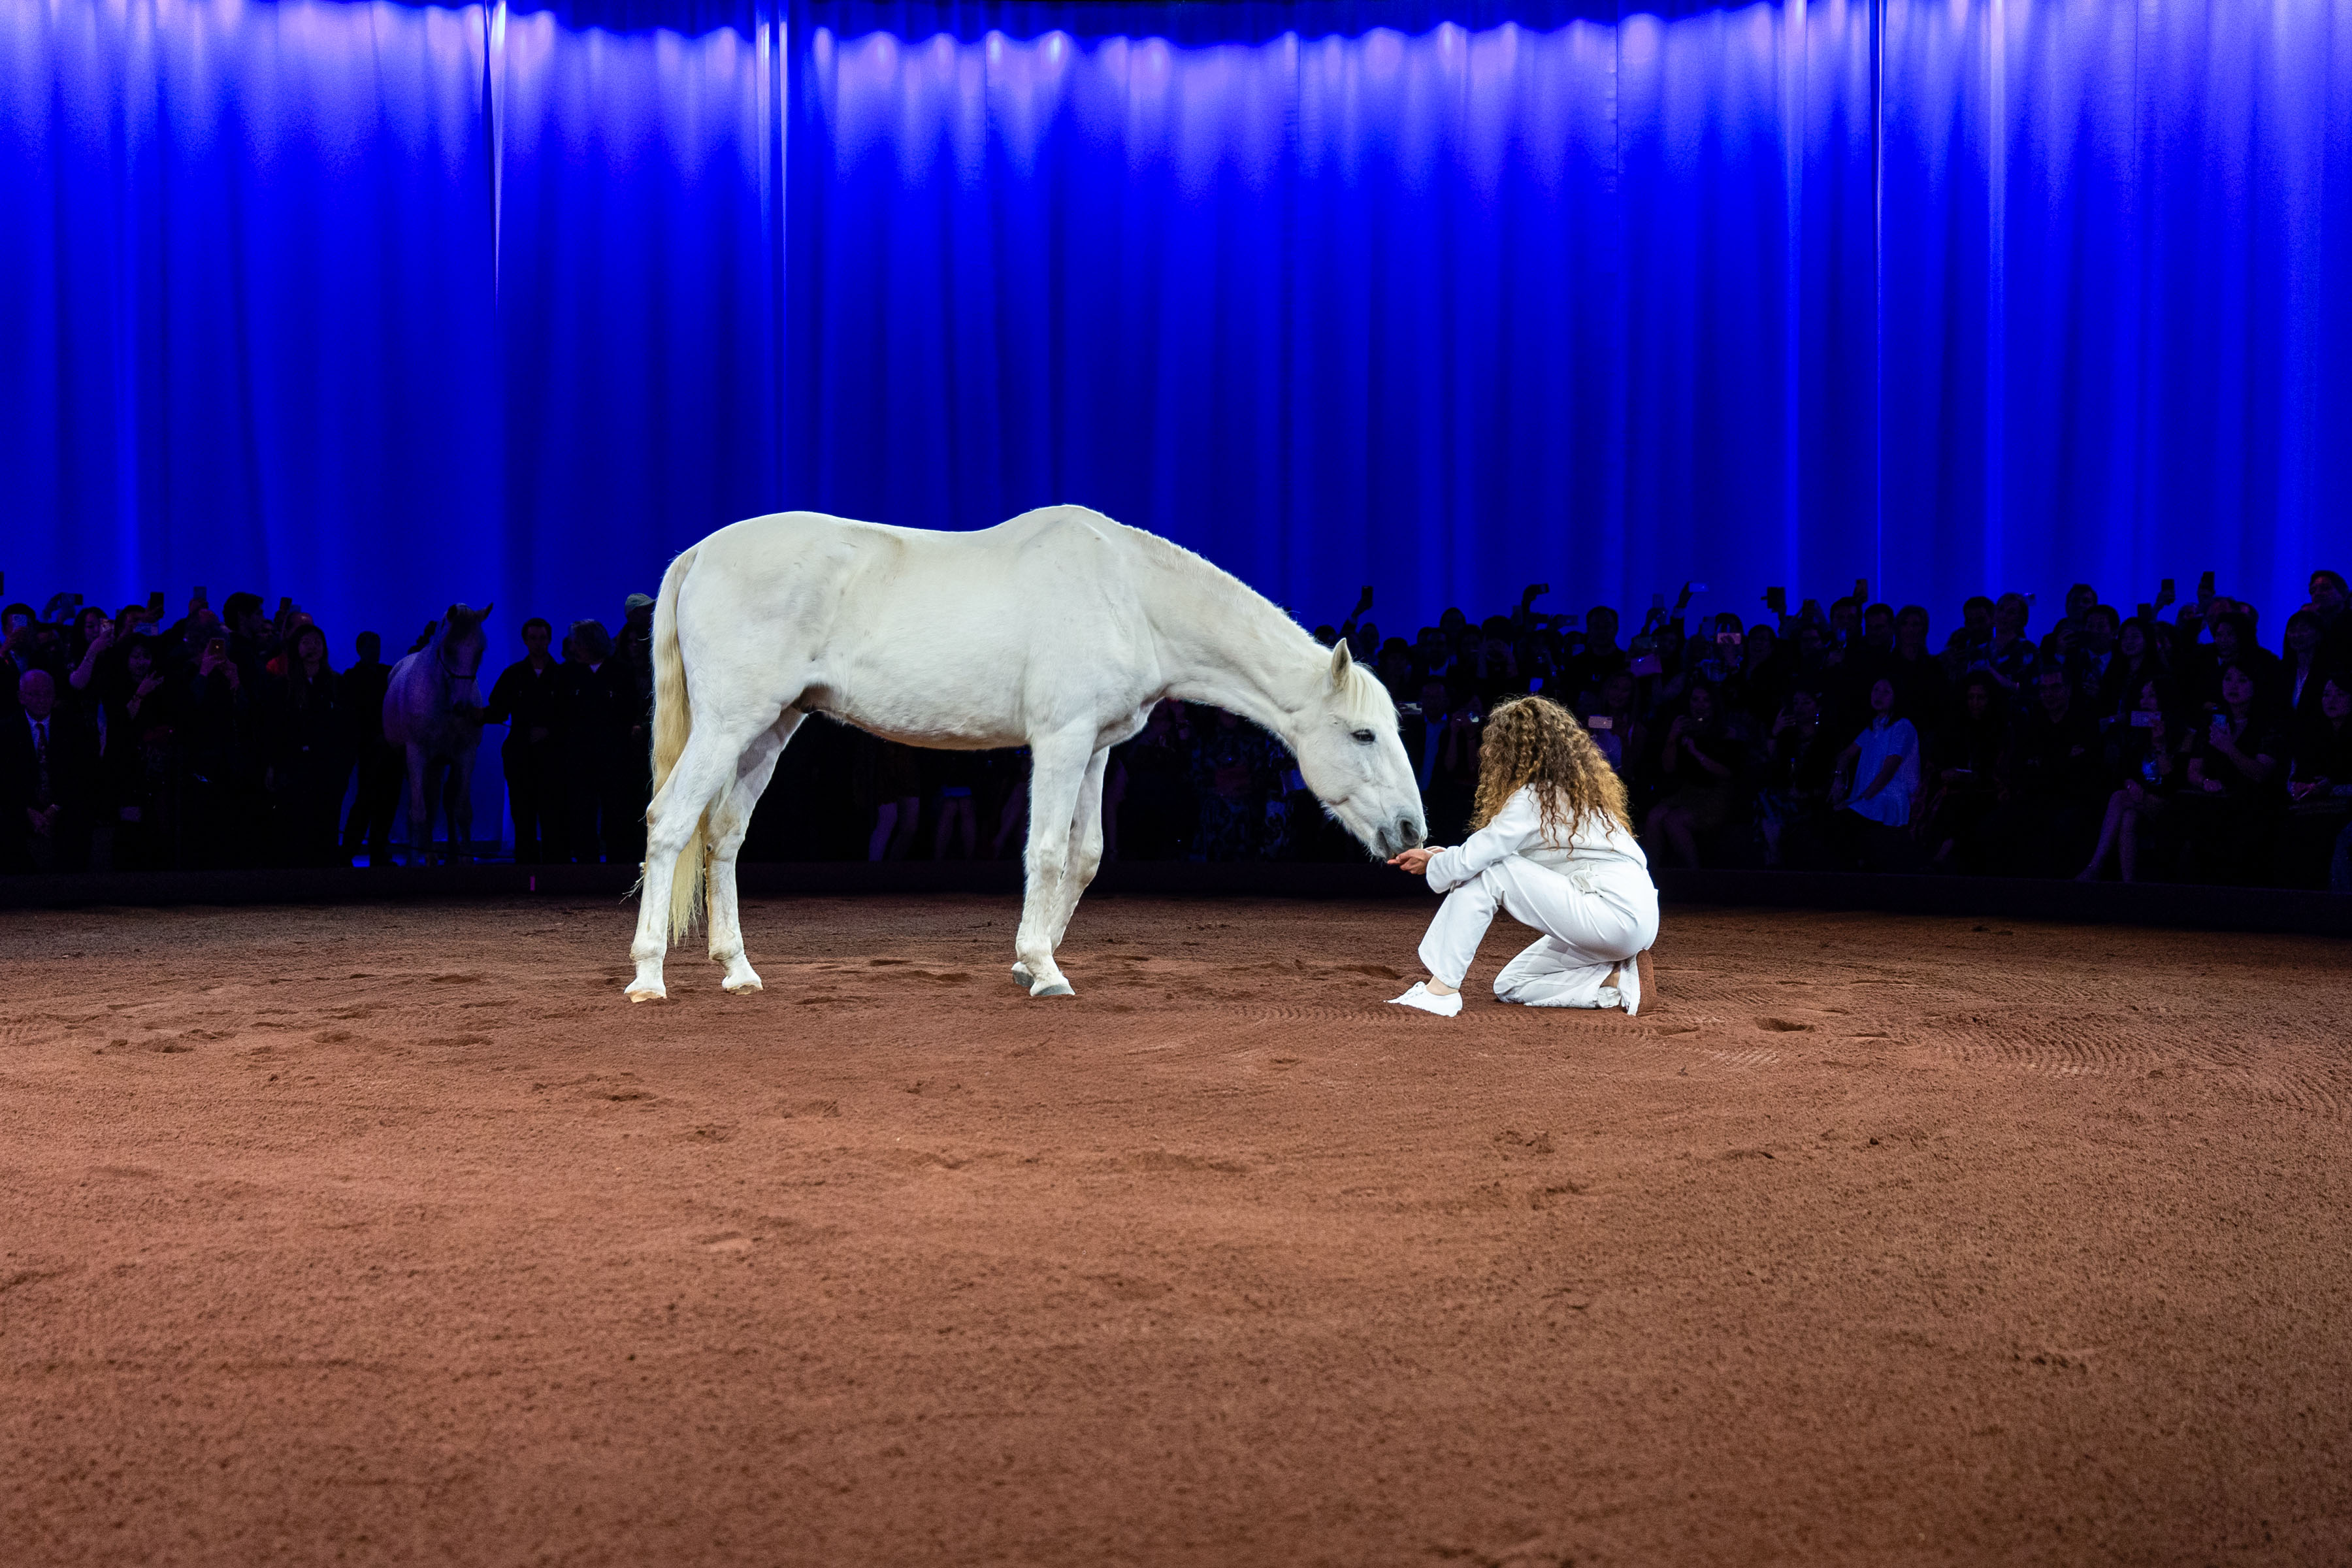 The after party featured a number of performances, including a horse ballet, in honor of the Maison's equestrian roots.